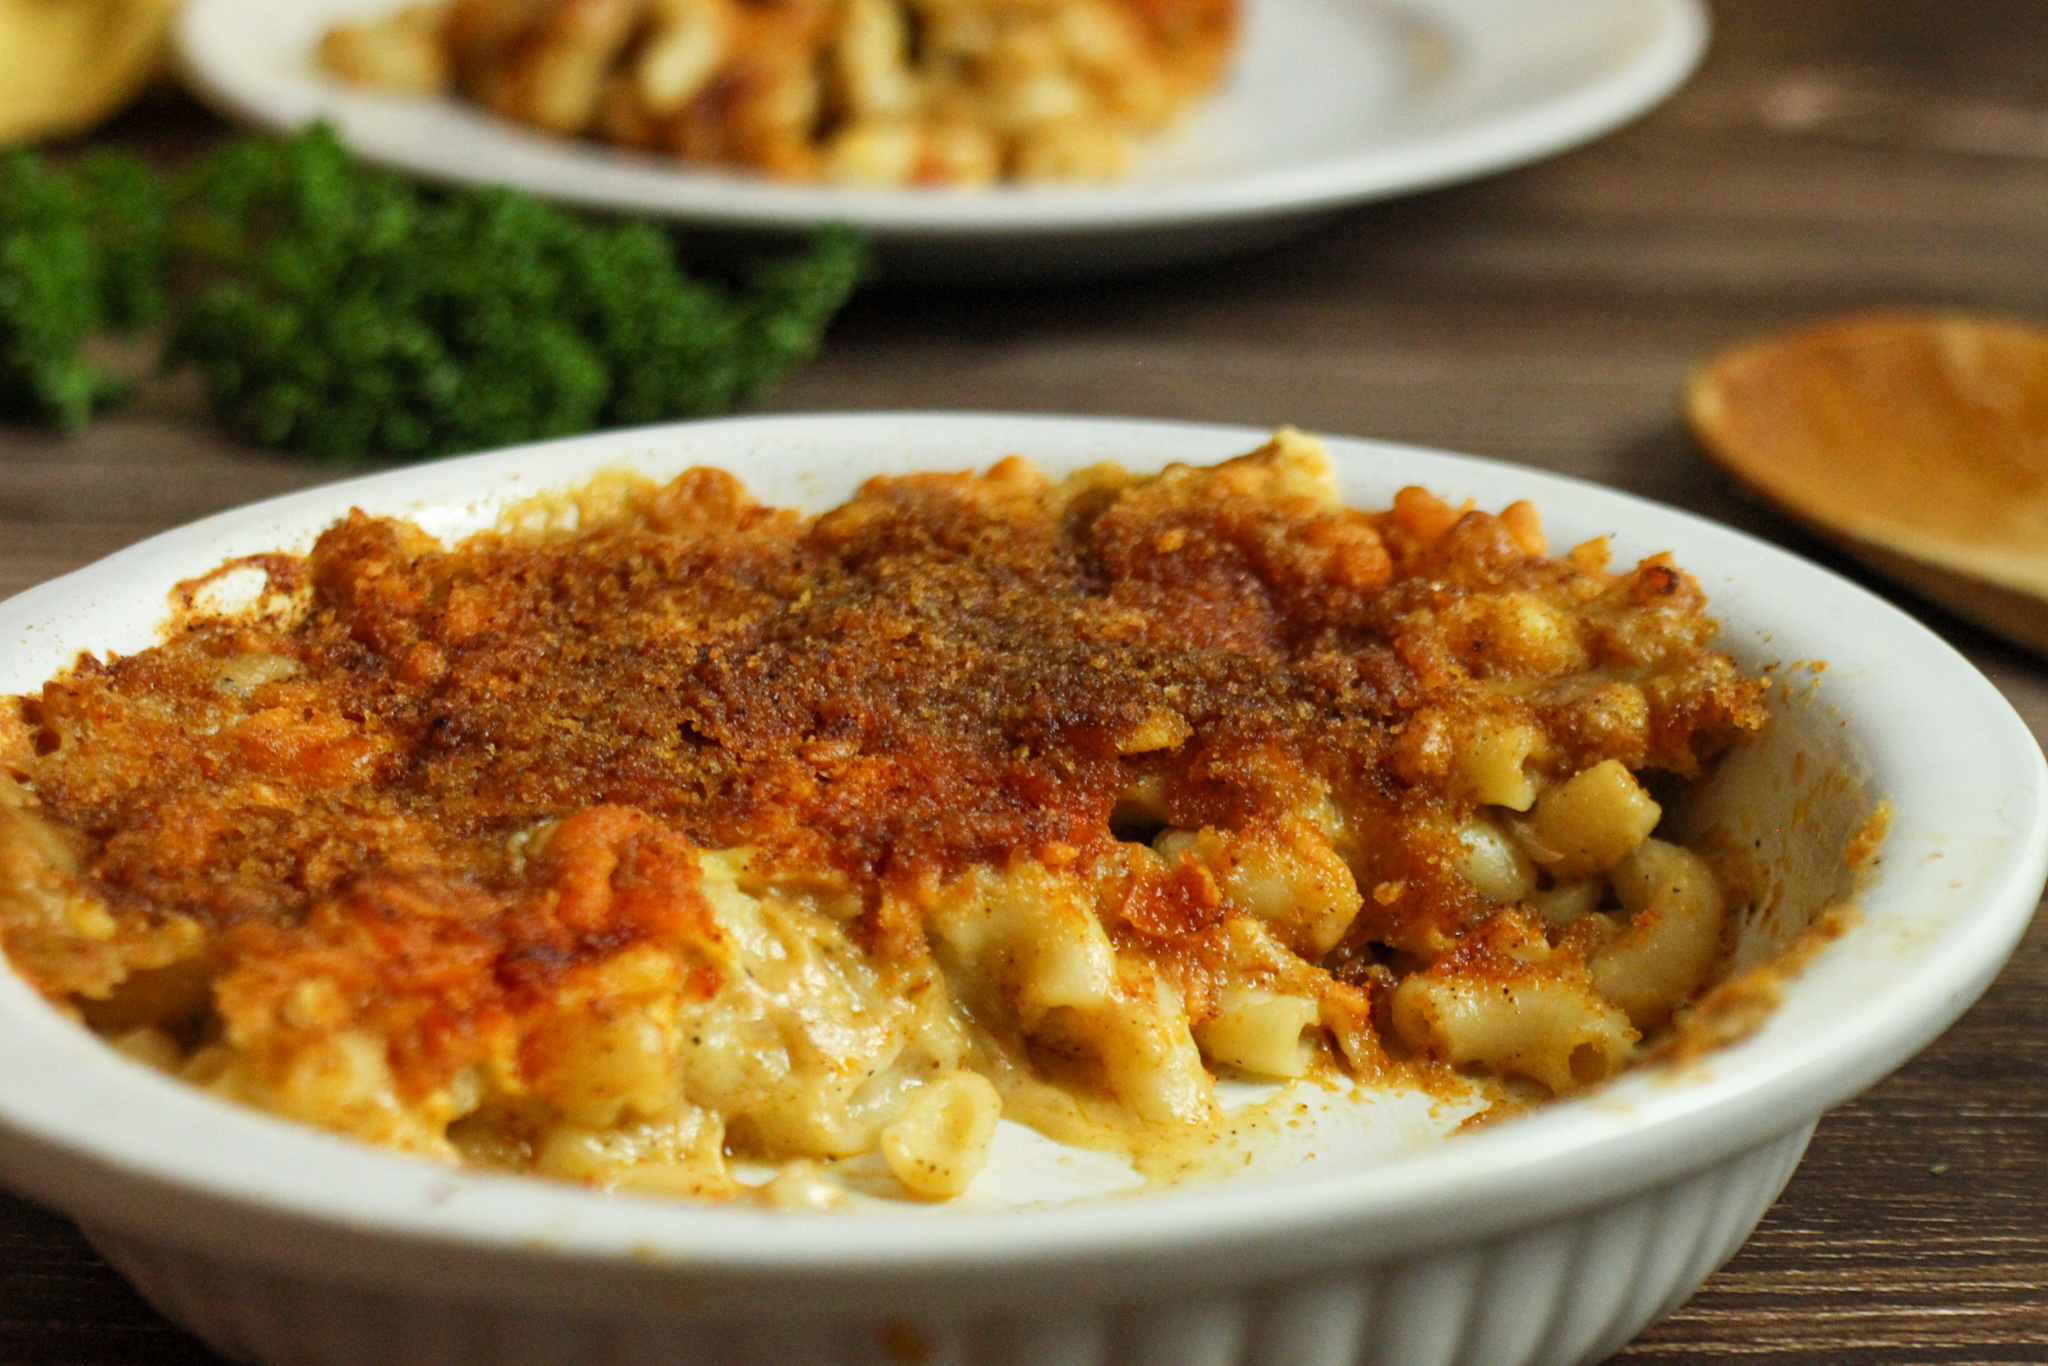 Easy Baked Vegan Mac and Cheese